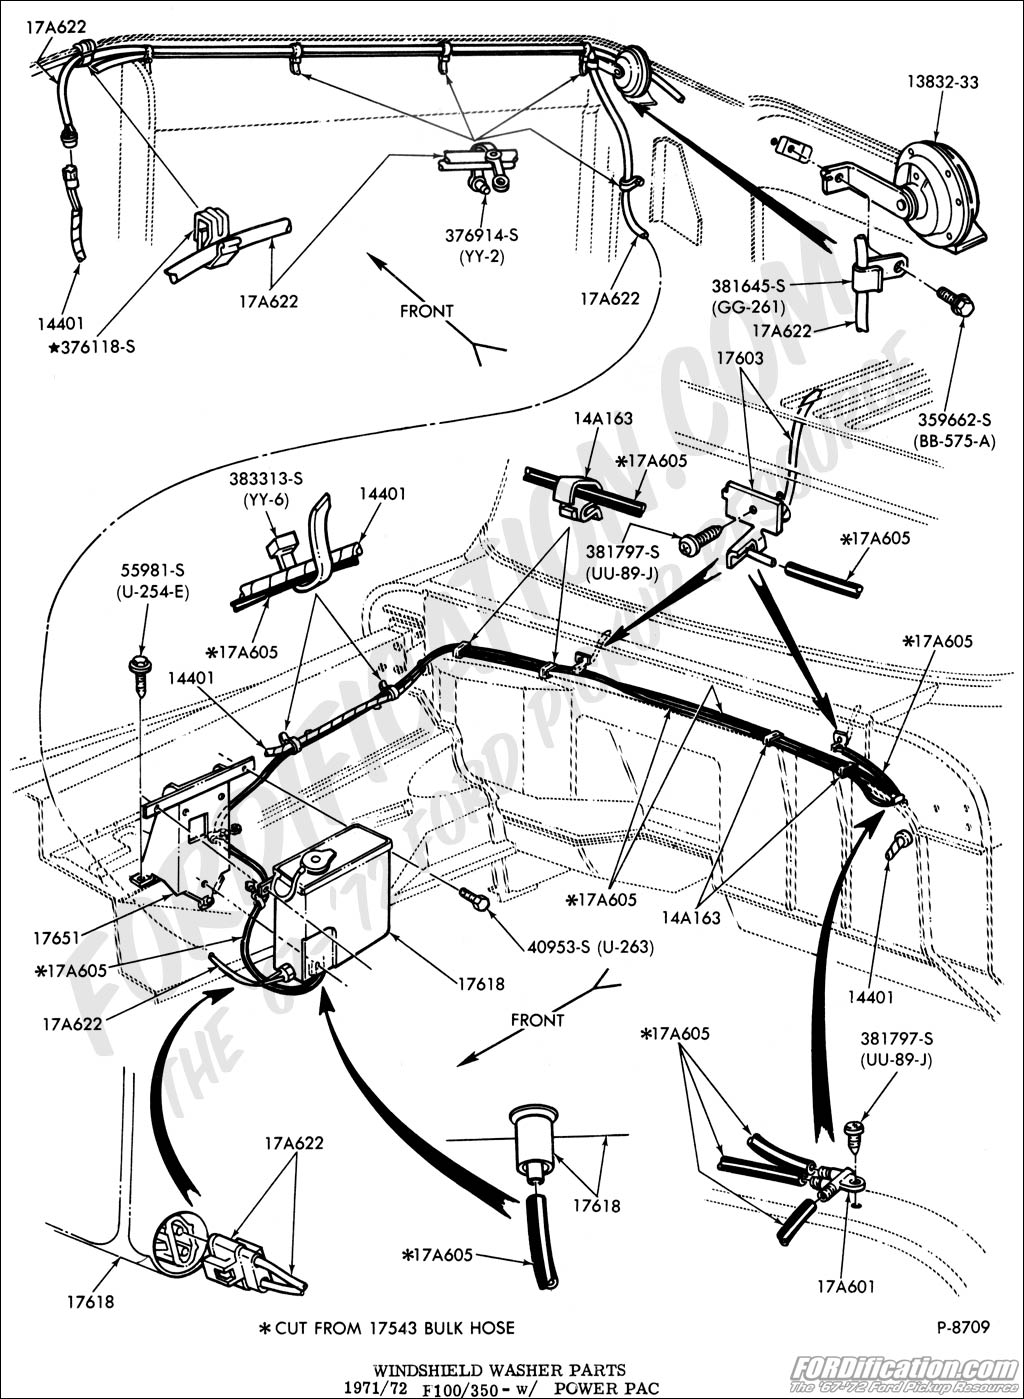 99 Mustang Wire Harness Schematics Wiring Diagrams 2004 Images Gallery